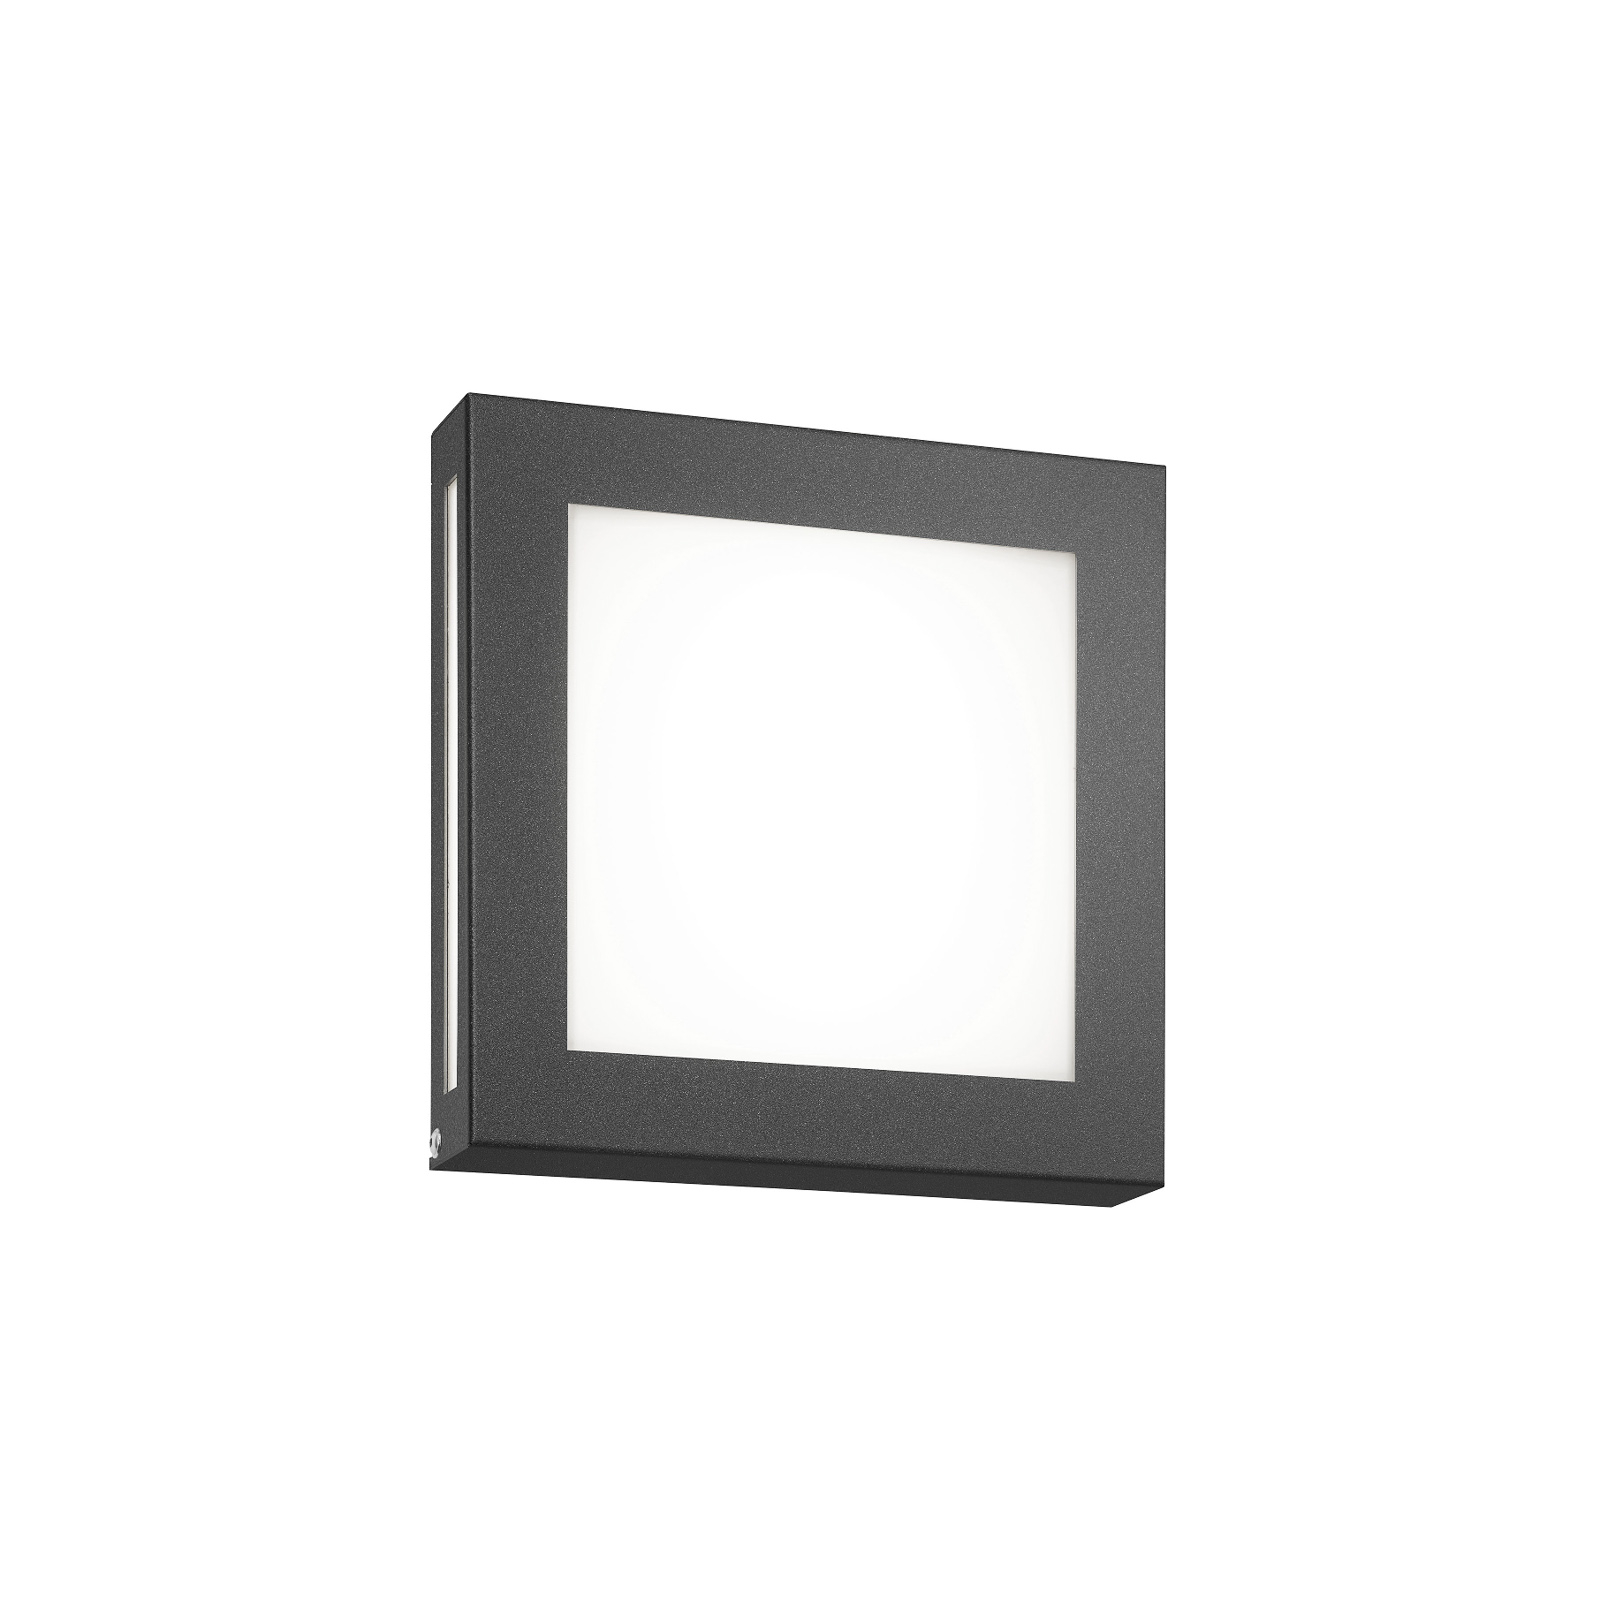 Applique d'extérieur LED Legendo Mini anthracite